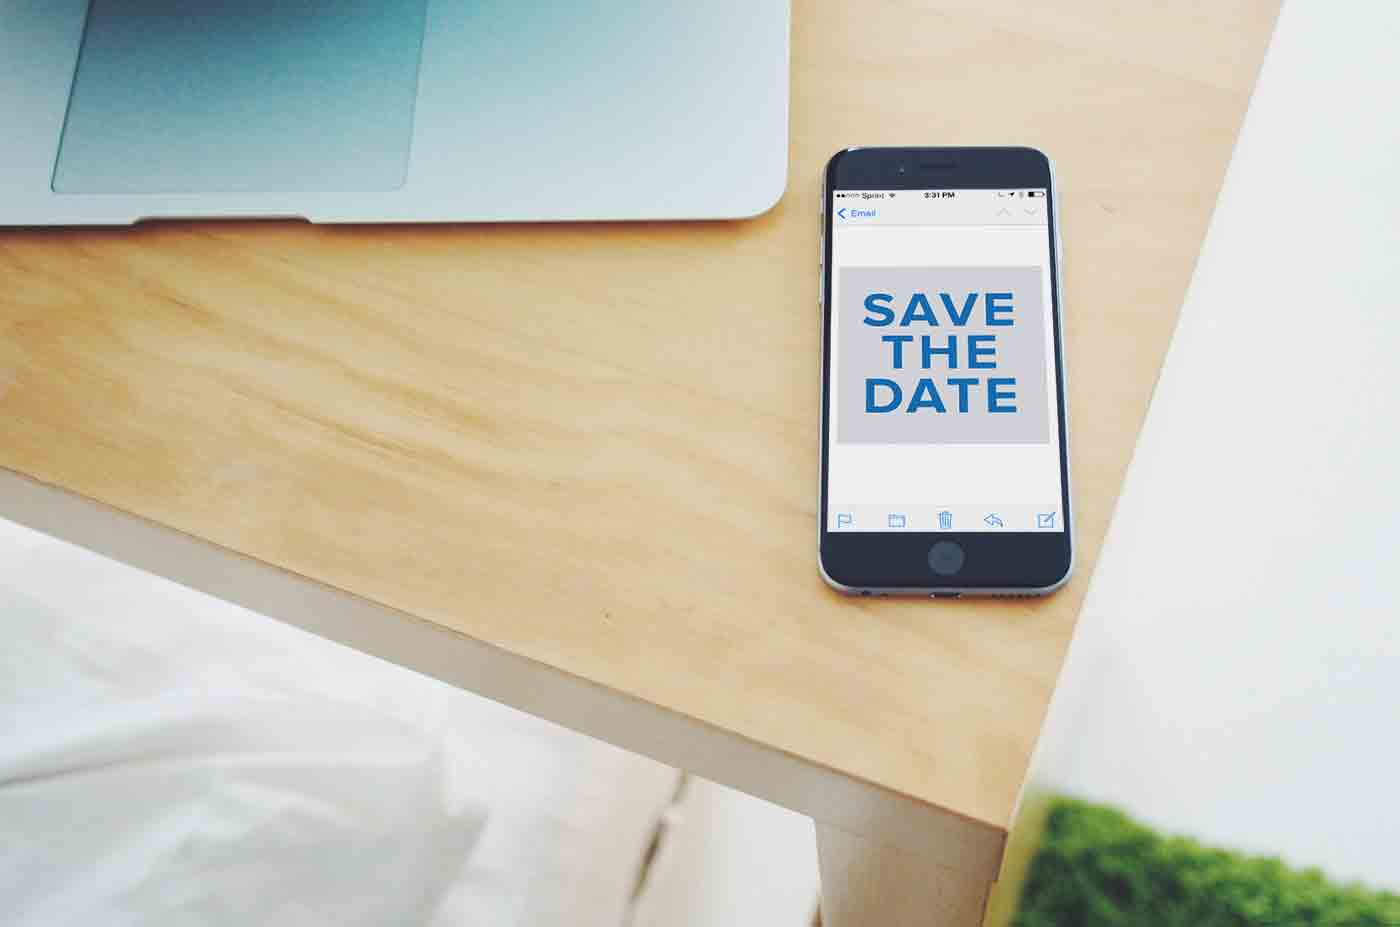 Tuesday Tip: Send A Save The Date Email